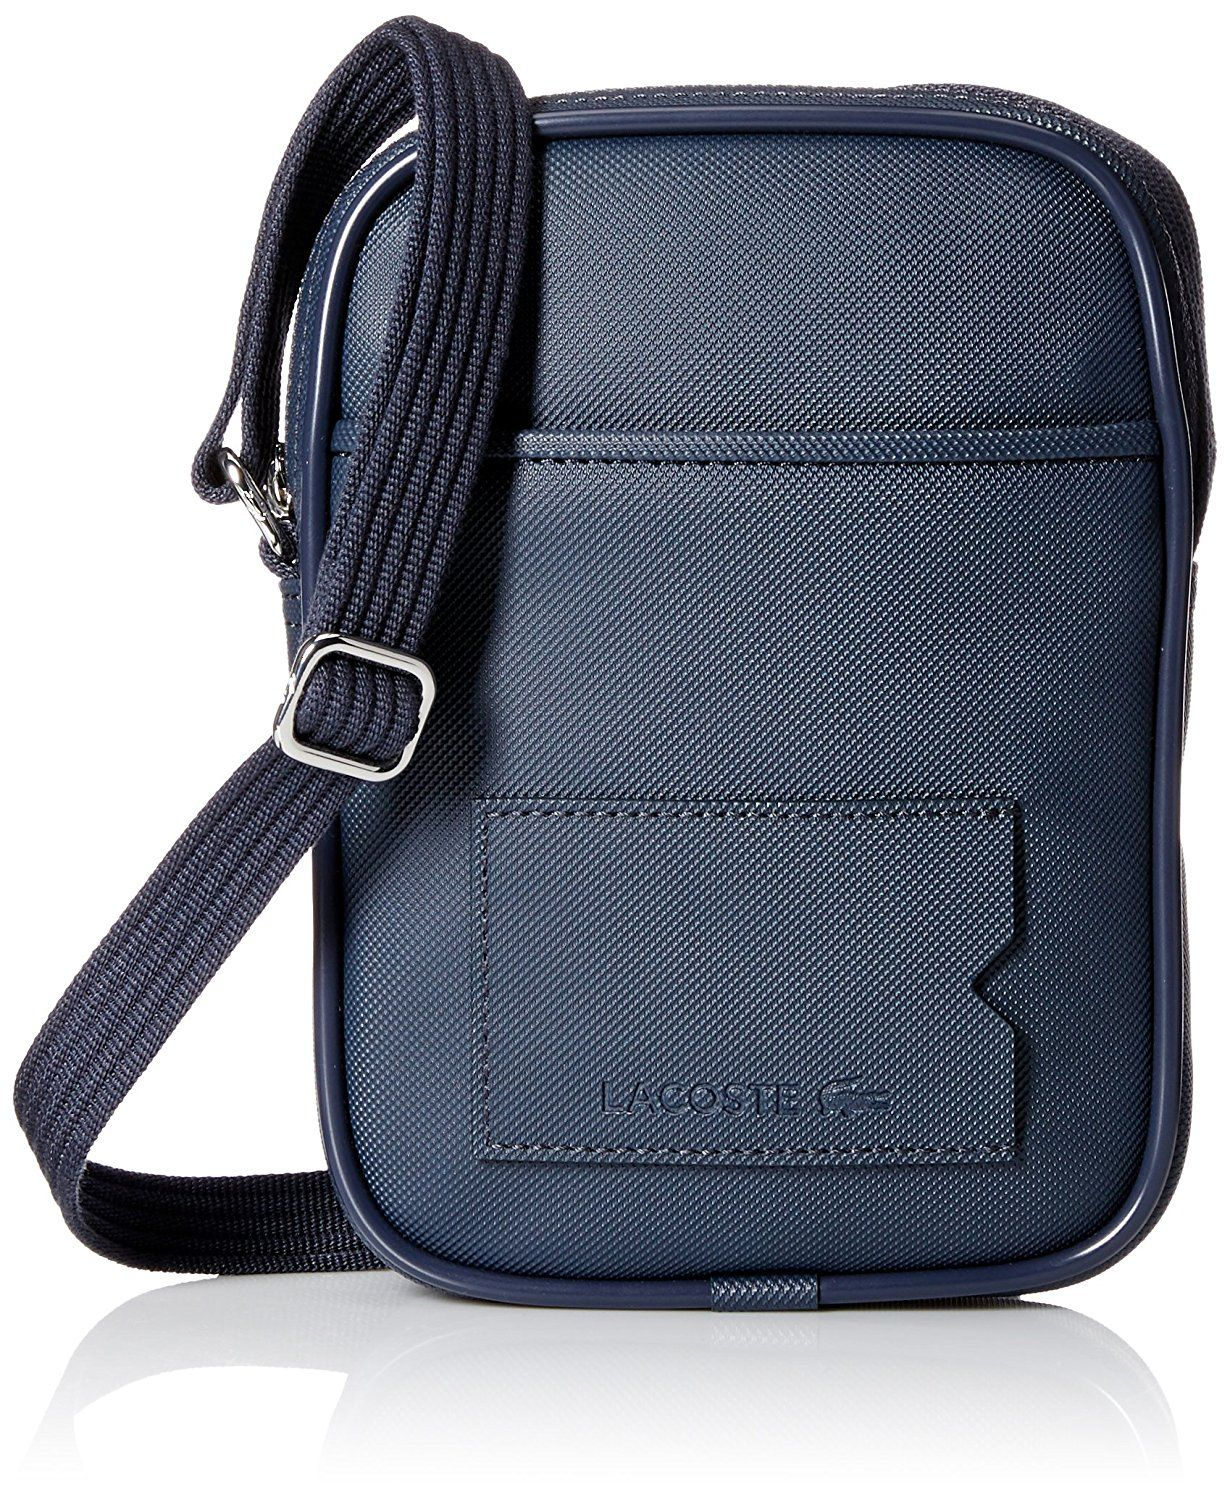 900fafa91e Lacoste Men s Classic Vertical Camera Bag     Startling review available  here   Backpacking bags